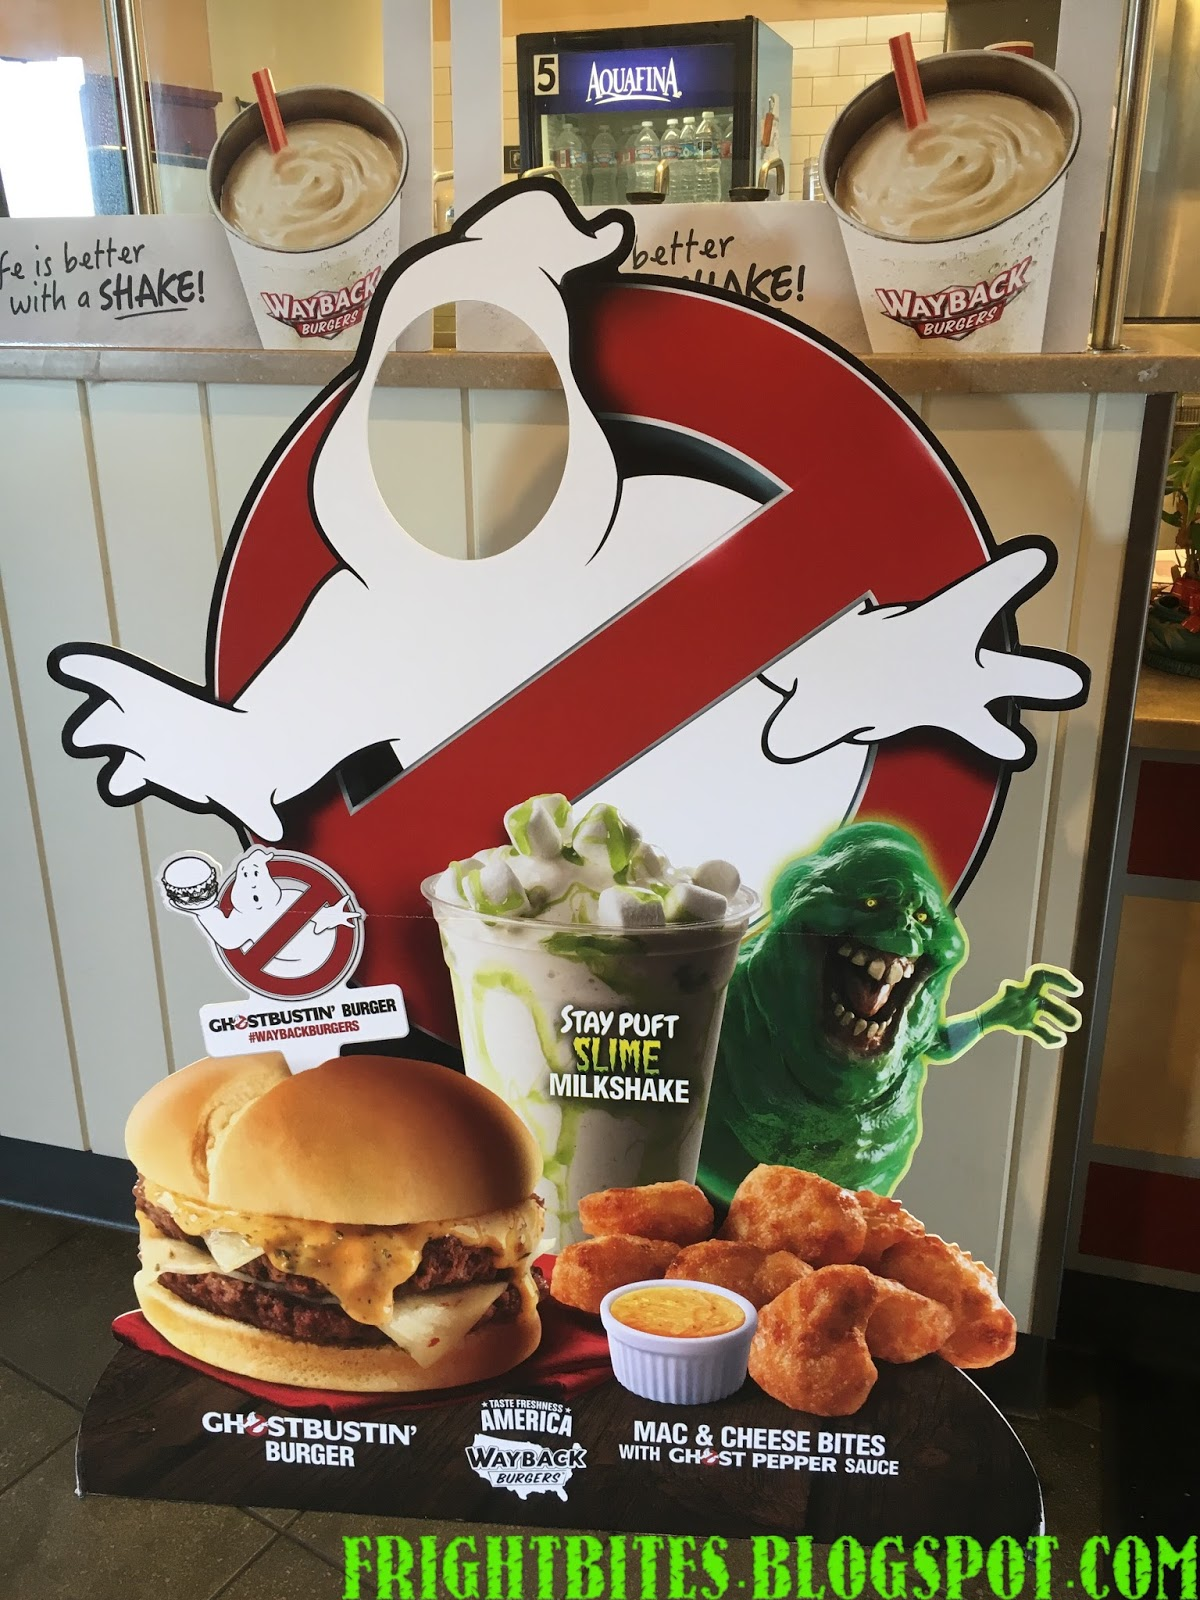 Fright Bites: Ghostbusters Menu Offerings from WayBack Burgers